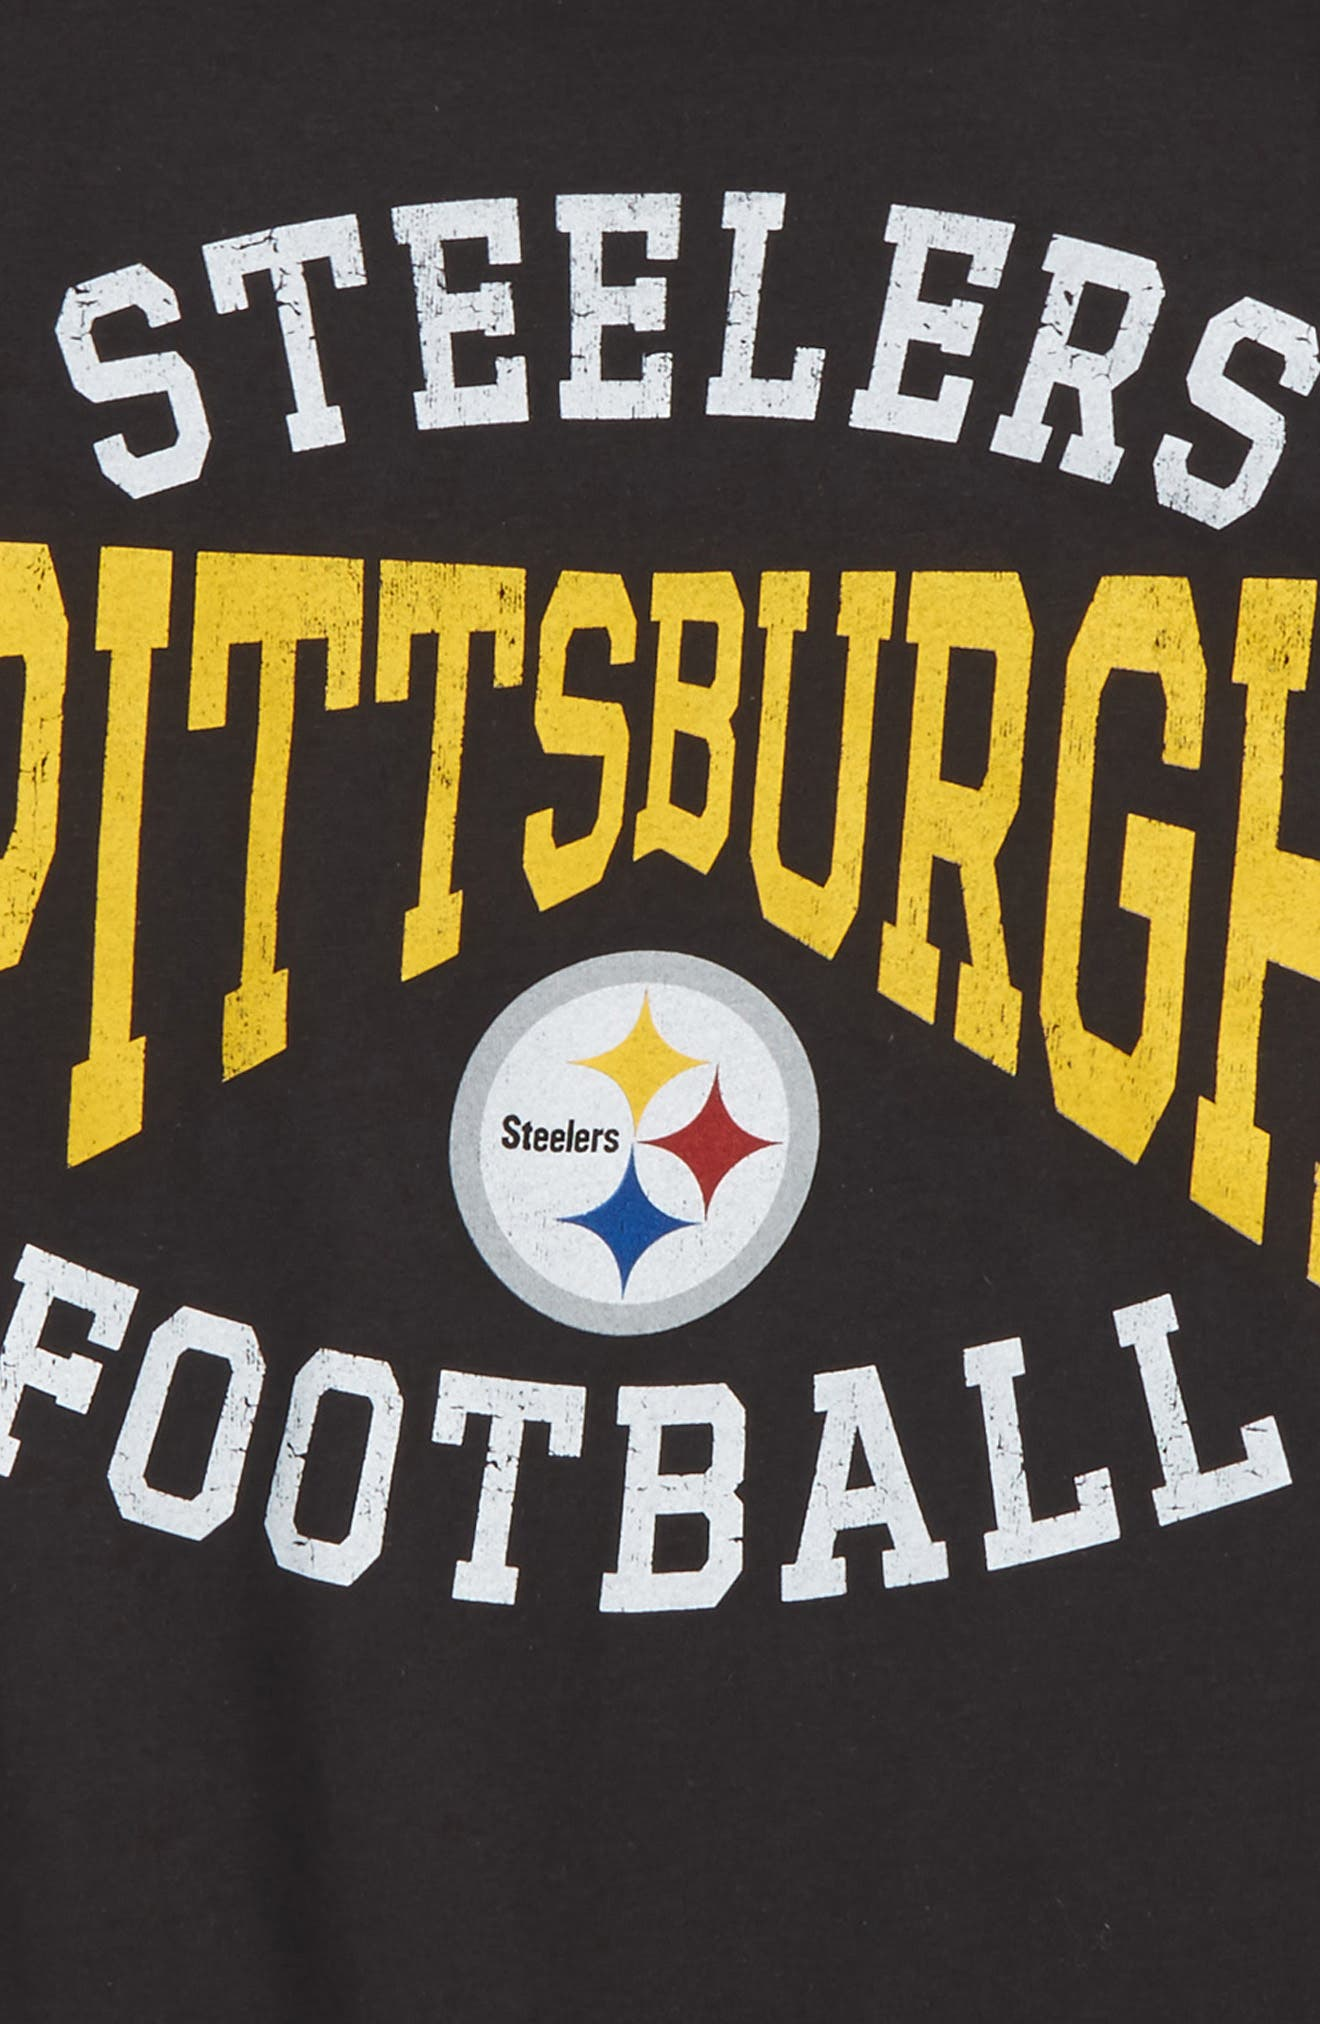 NFL Pitsburgh Steelers Greatness T-Shirt,                             Alternate thumbnail 2, color,                             001